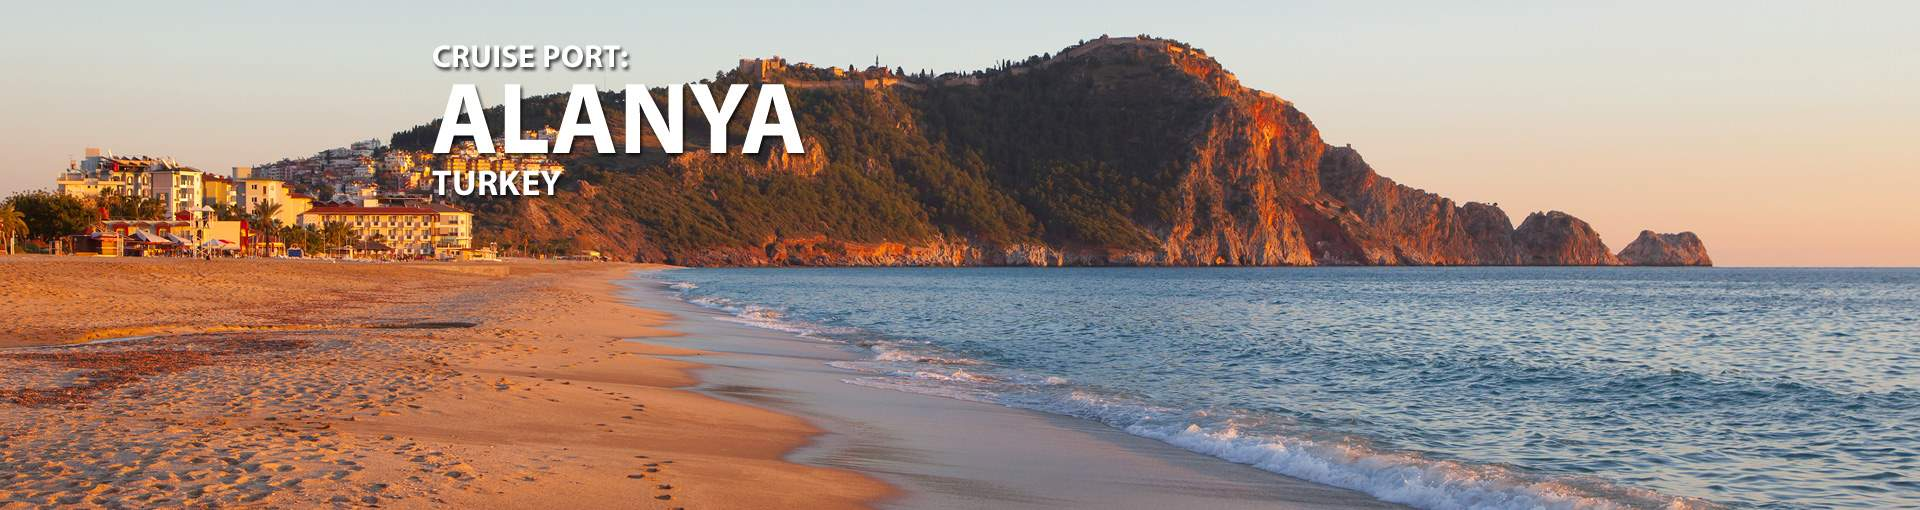 Cruises to Alanya, Turkey